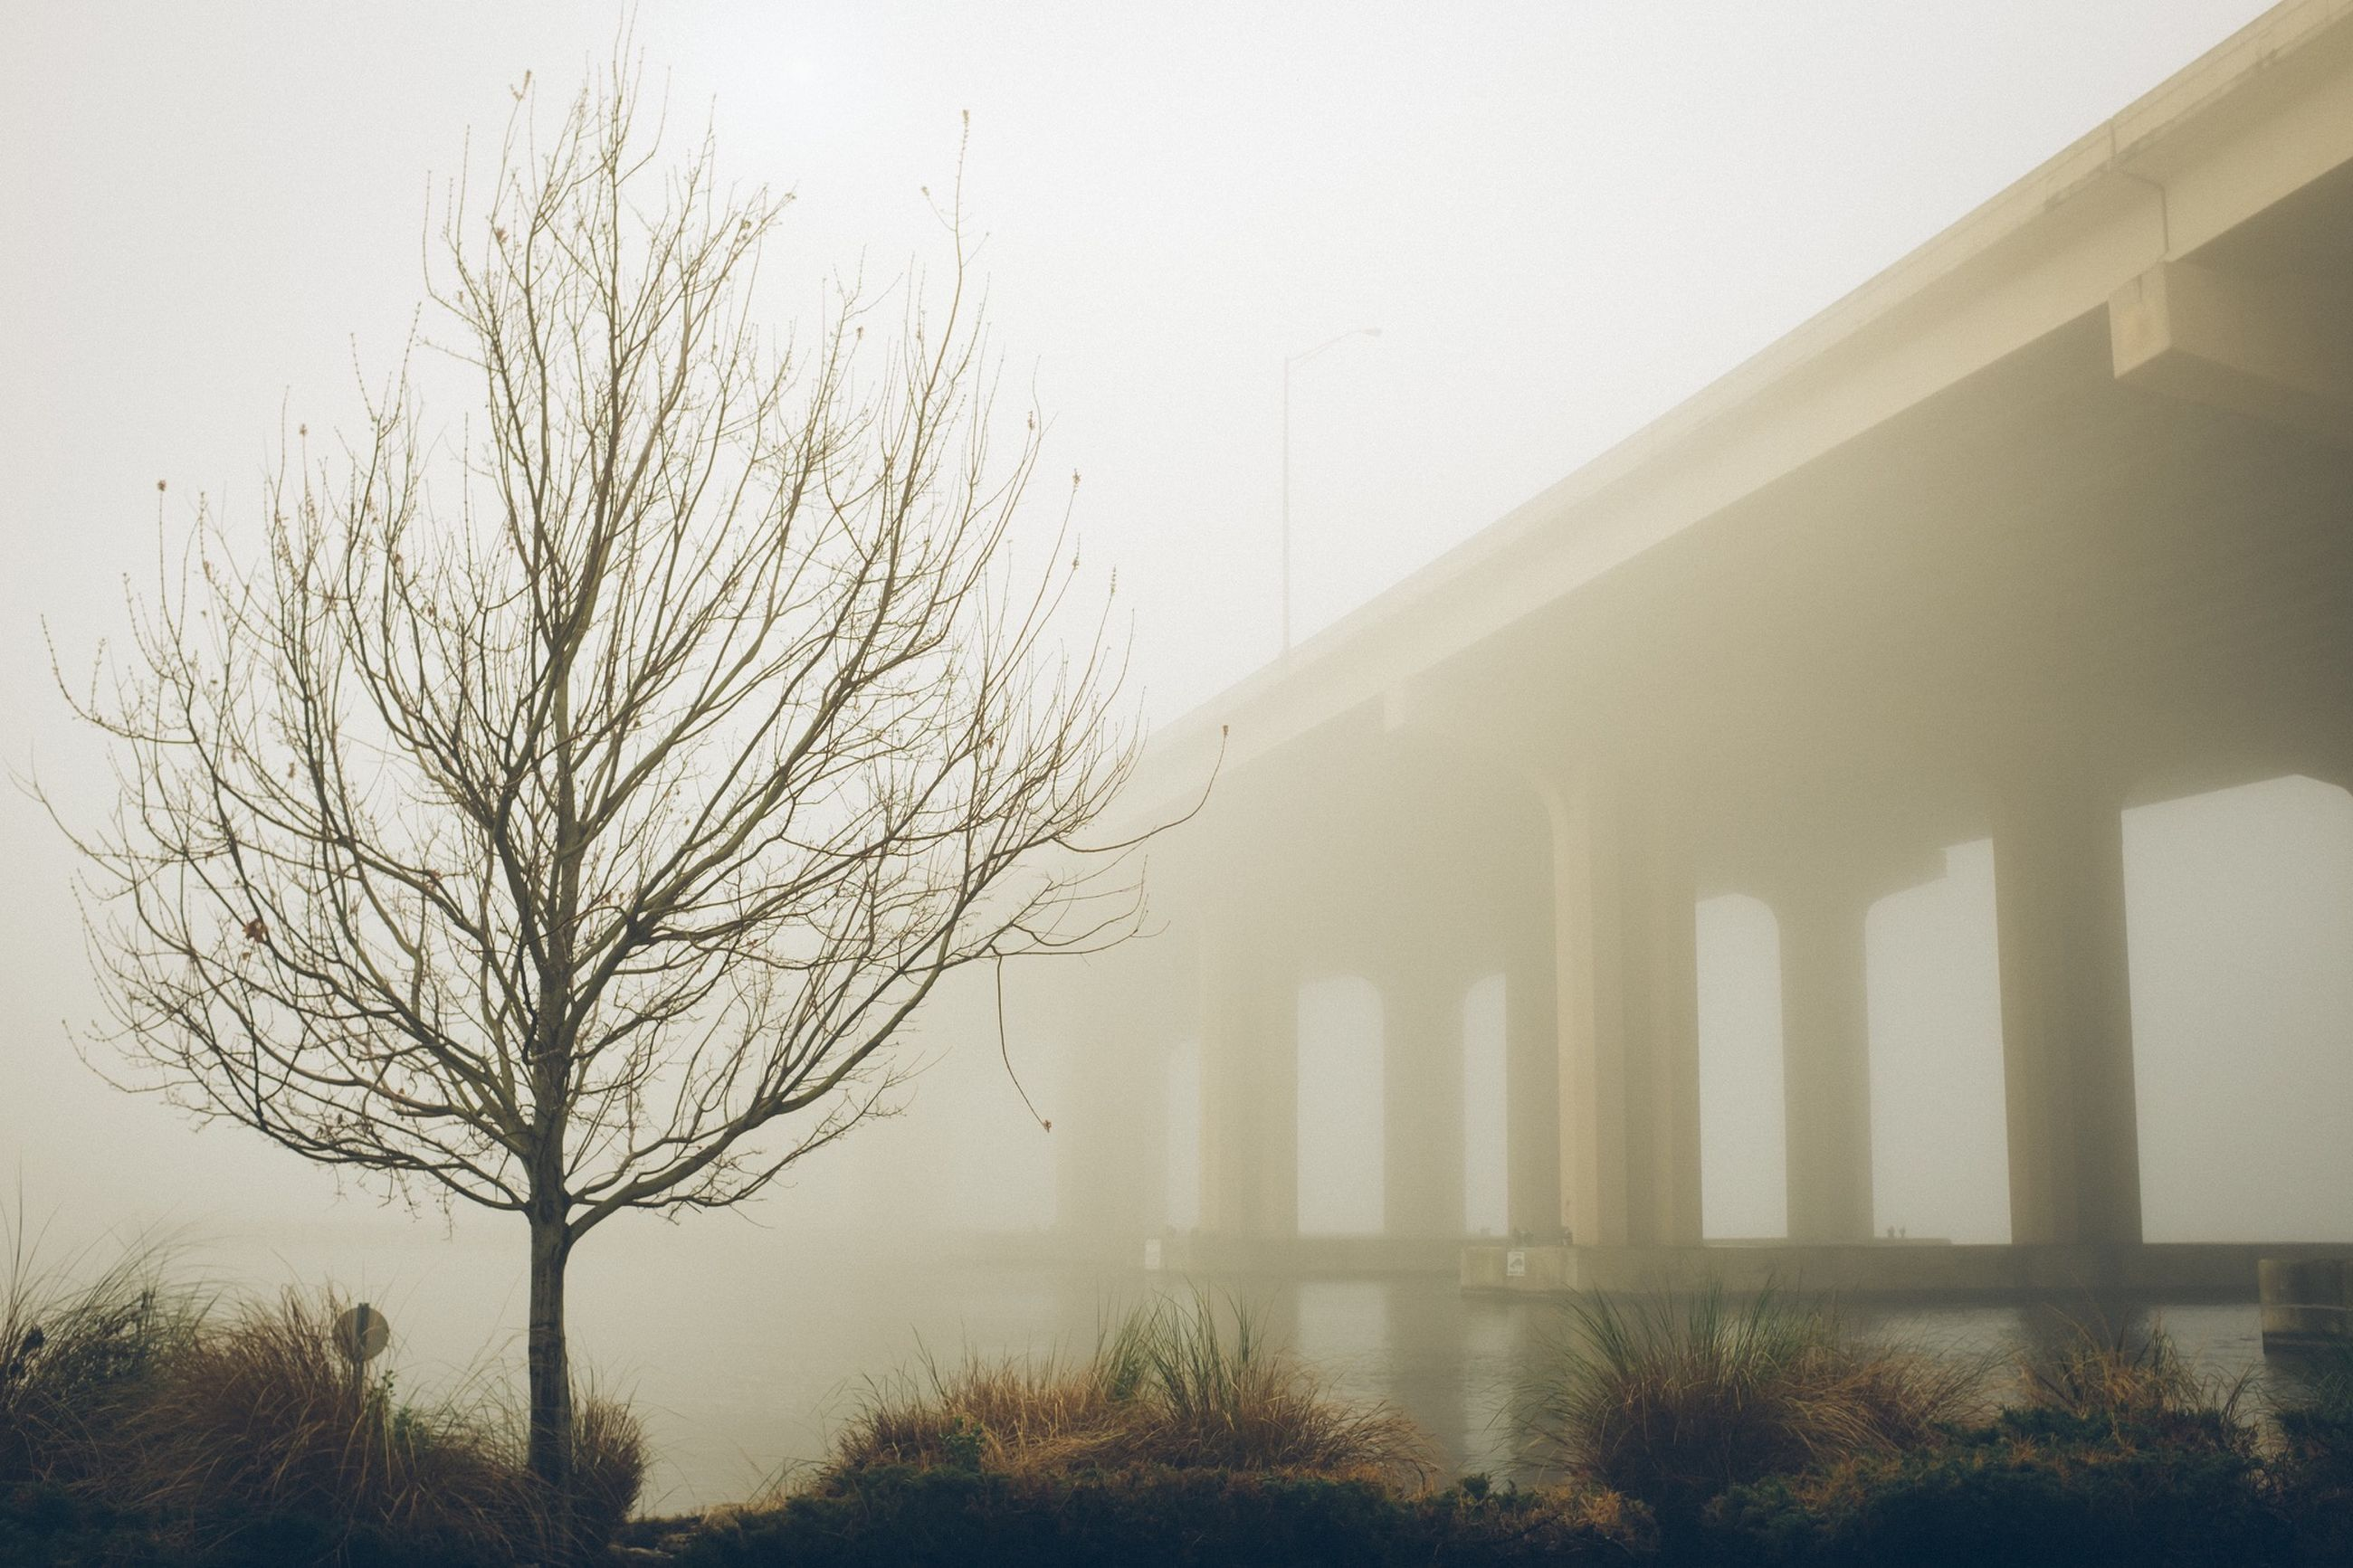 fog, bare tree, foggy, tree, built structure, architecture, weather, tranquility, copy space, branch, nature, bridge - man made structure, connection, day, tranquil scene, outdoors, no people, scenics, water